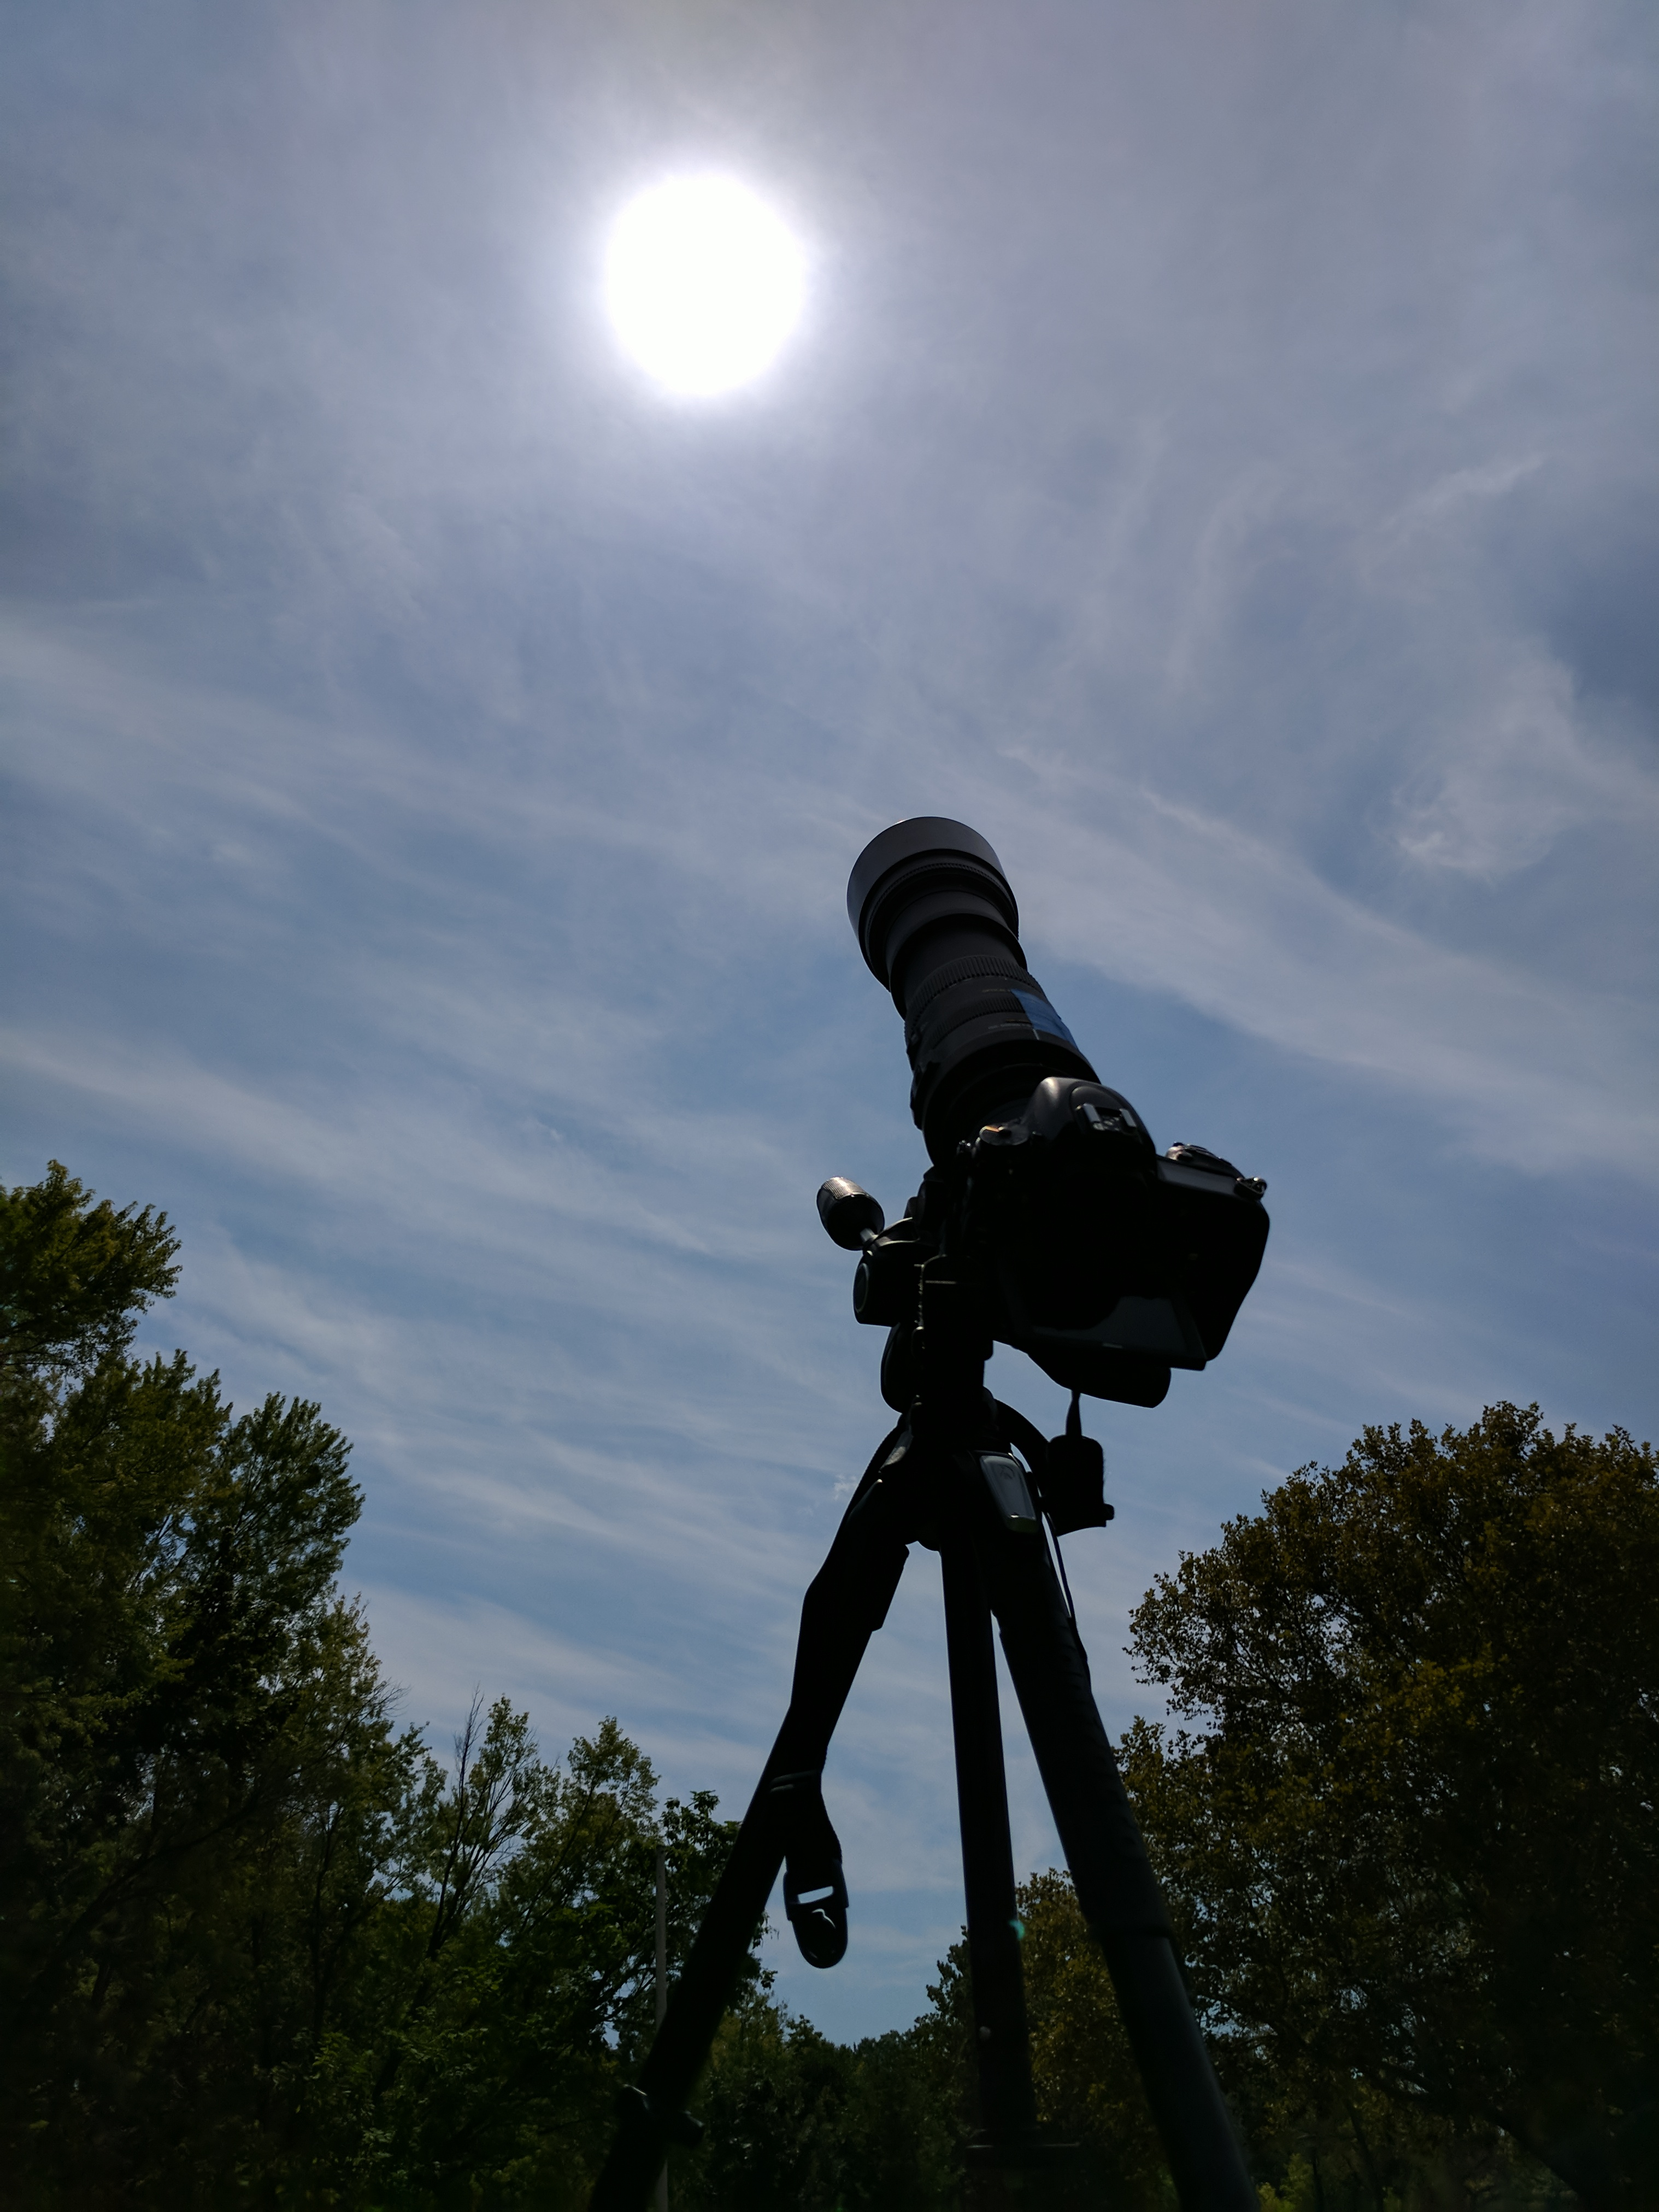 Awaiting totality